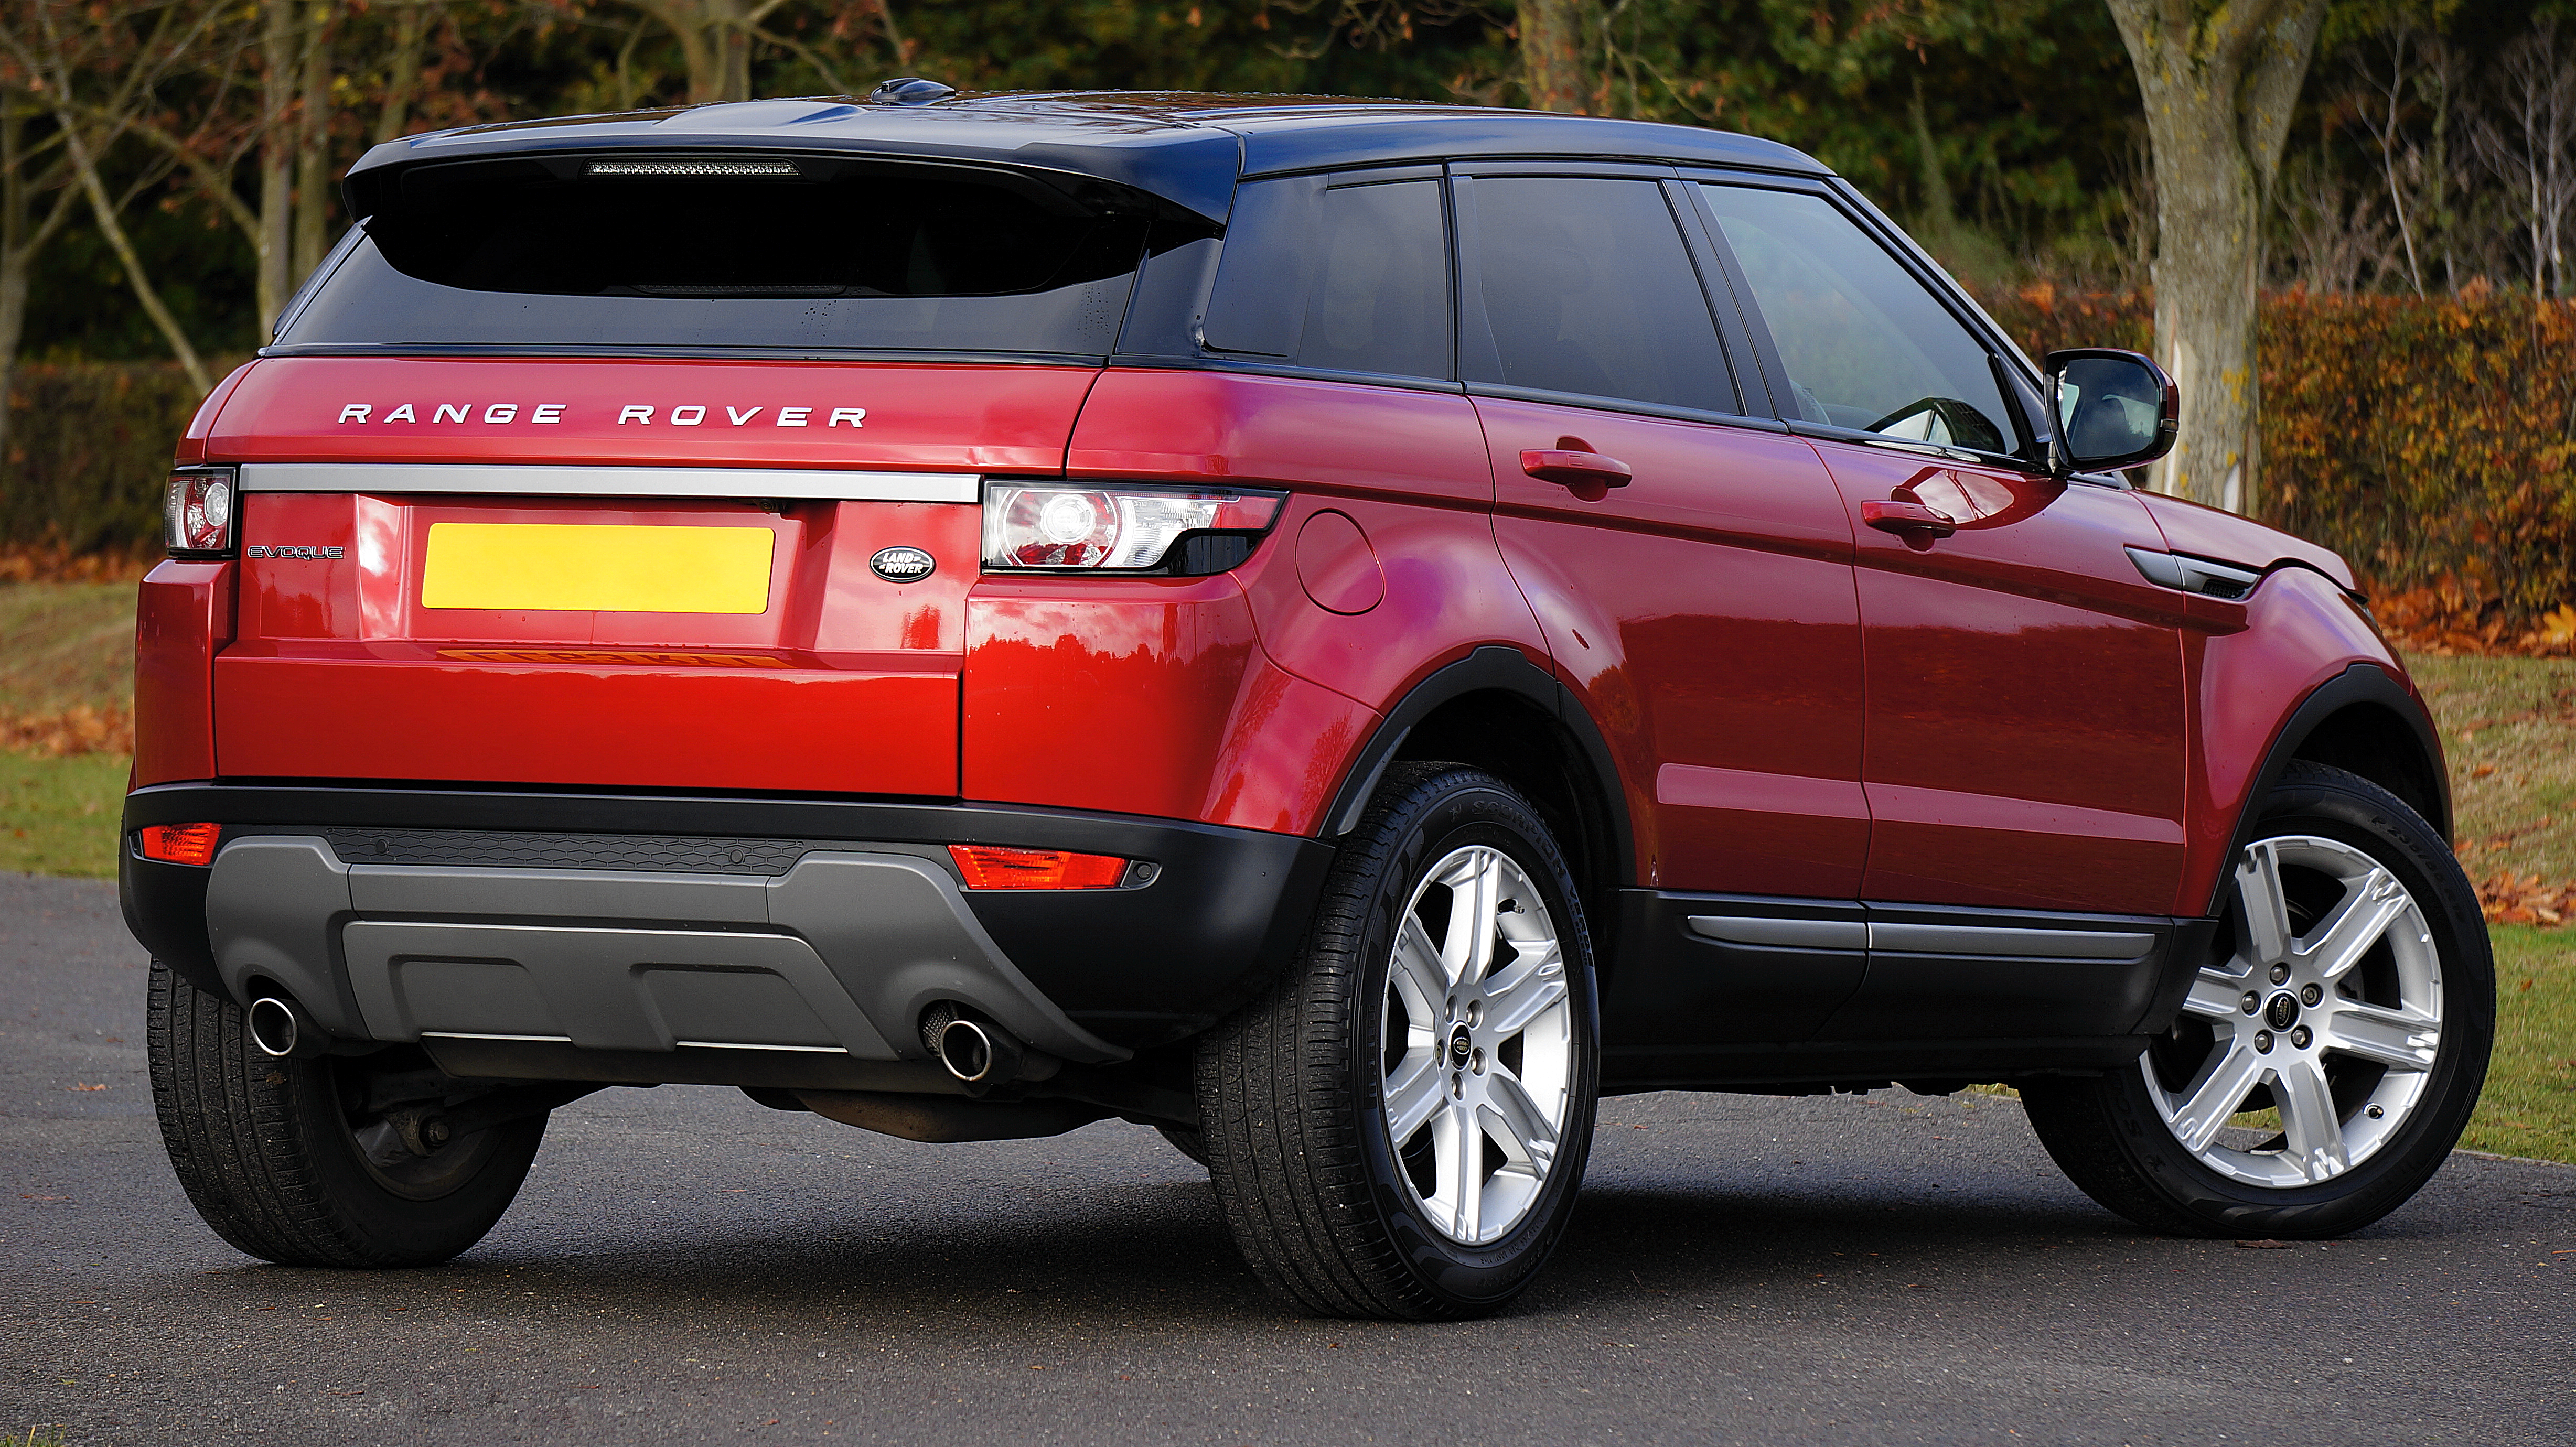 Red Land Rover Range Rover · Free Stock